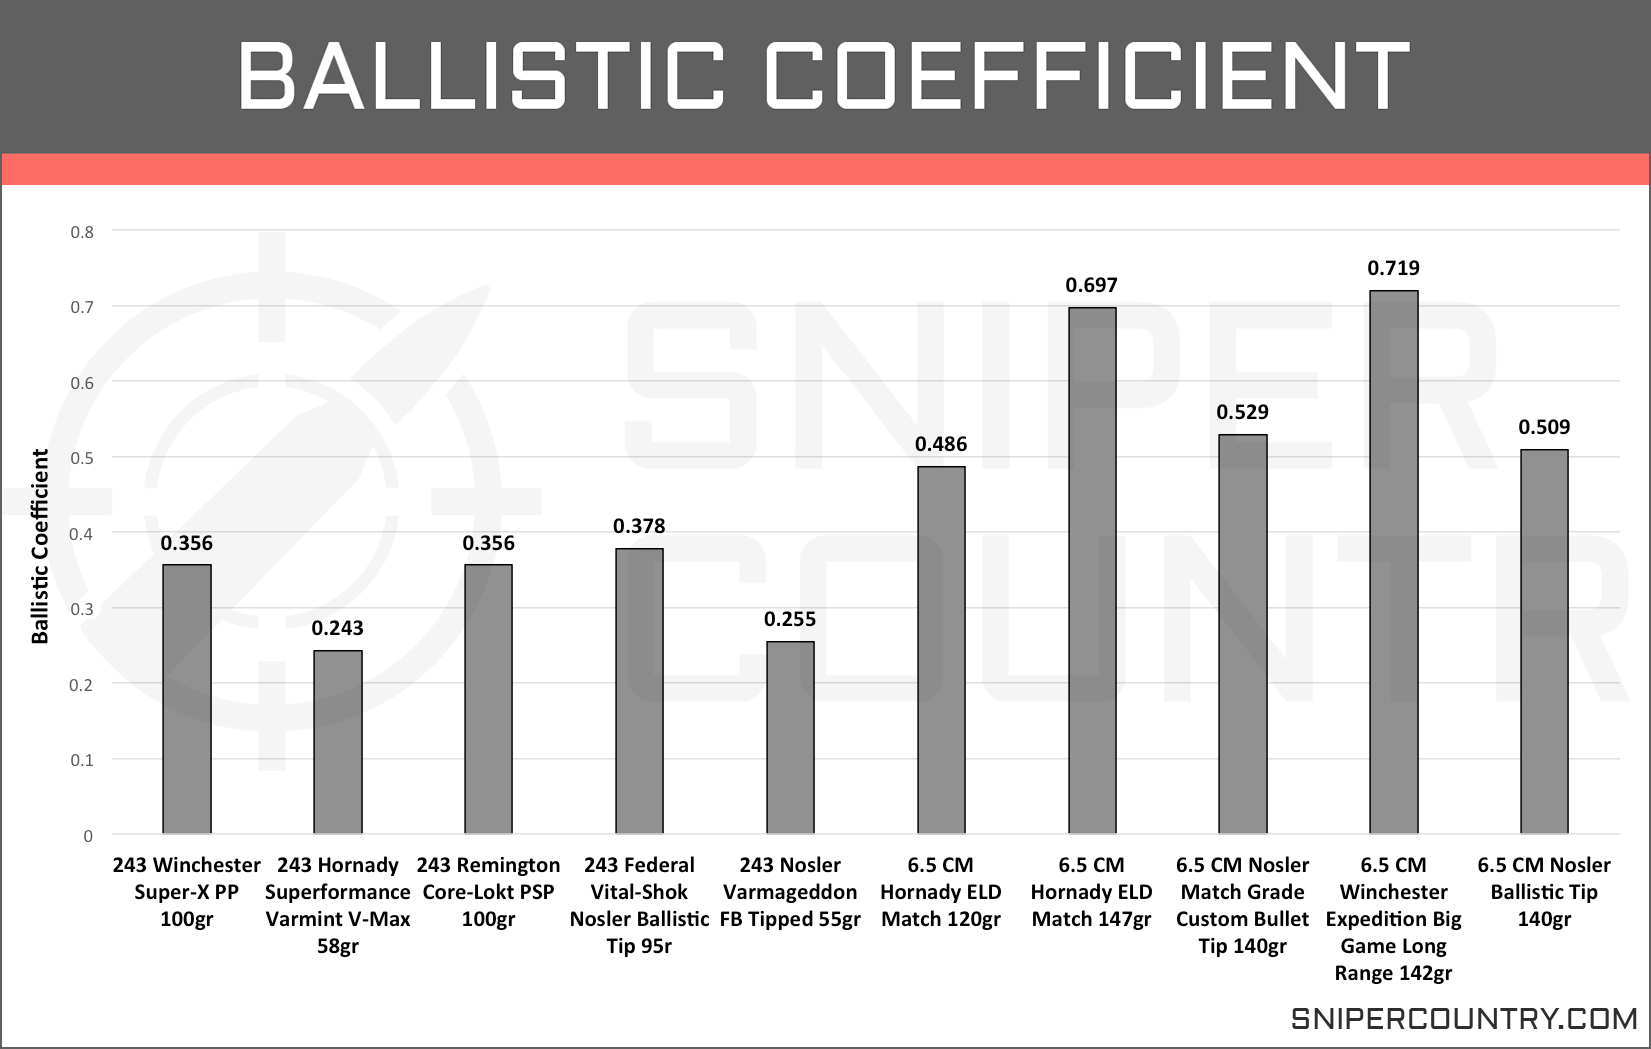 Ballistic Coefficient 6.5 Creedmoor vs .243 Win